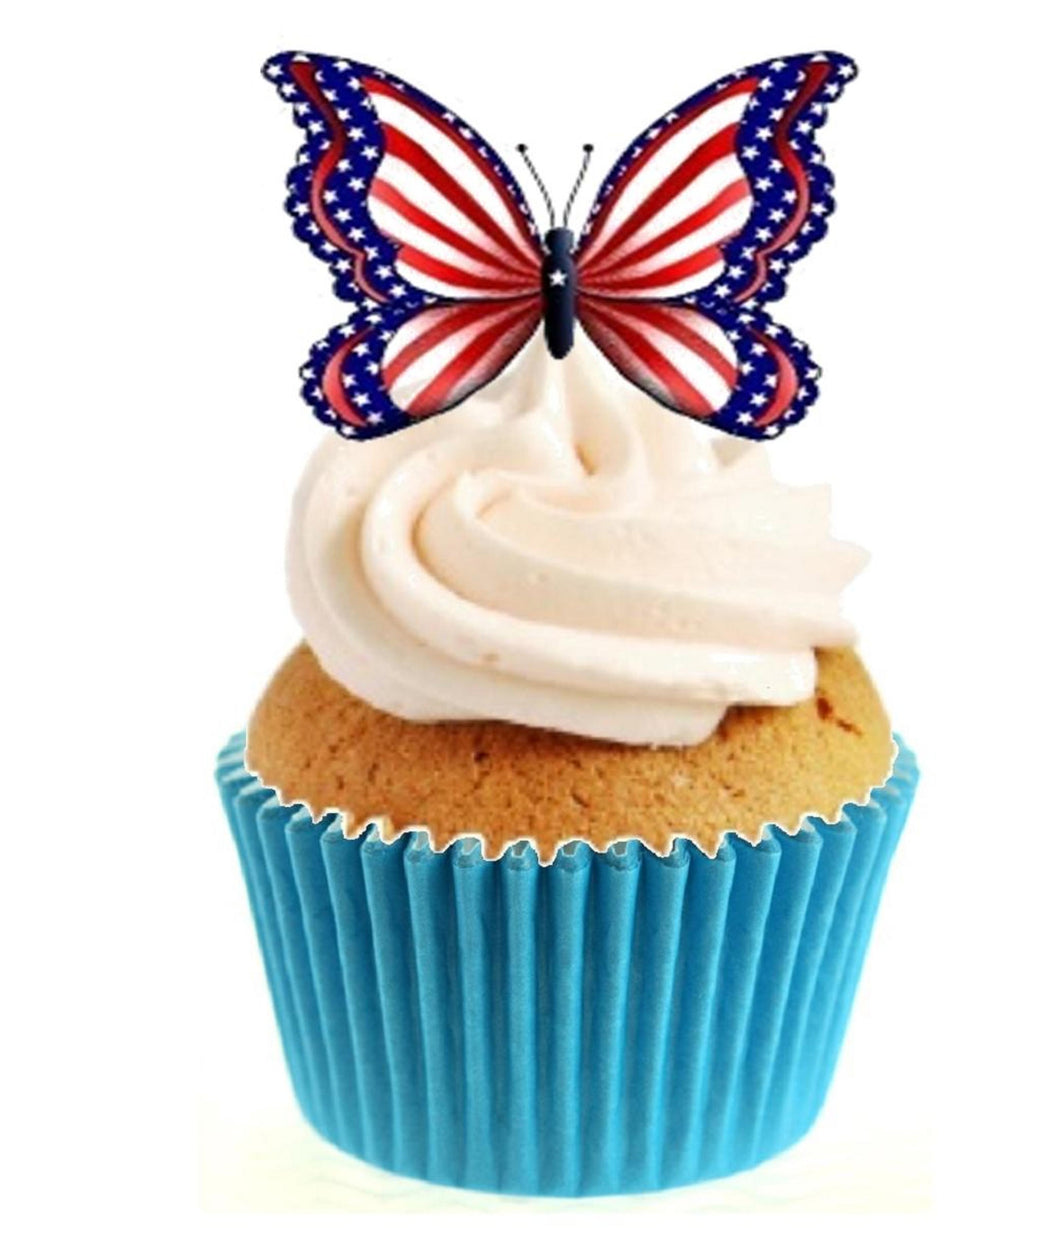 American Butterfly Stand Up Cake Toppers (12 pack)  Pack contains 12 images printed onto premium wafer card